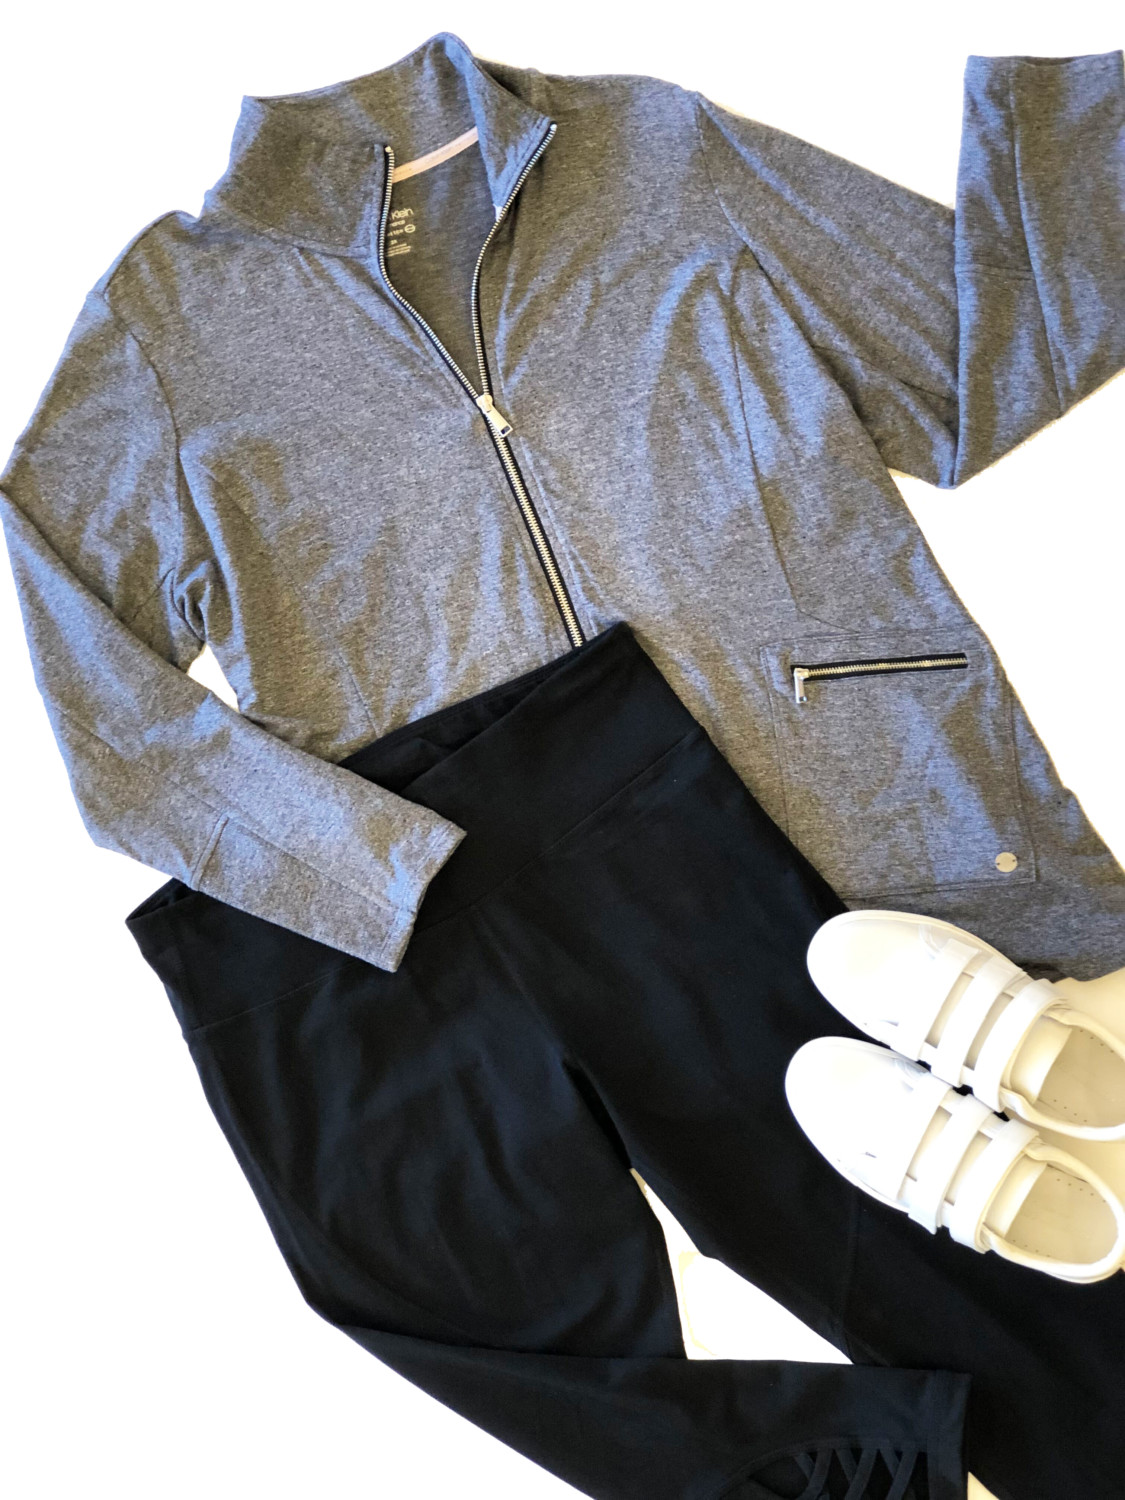 Calvin Klein Plus Jacket & Pants – Original Retail: $148, CWS: $35